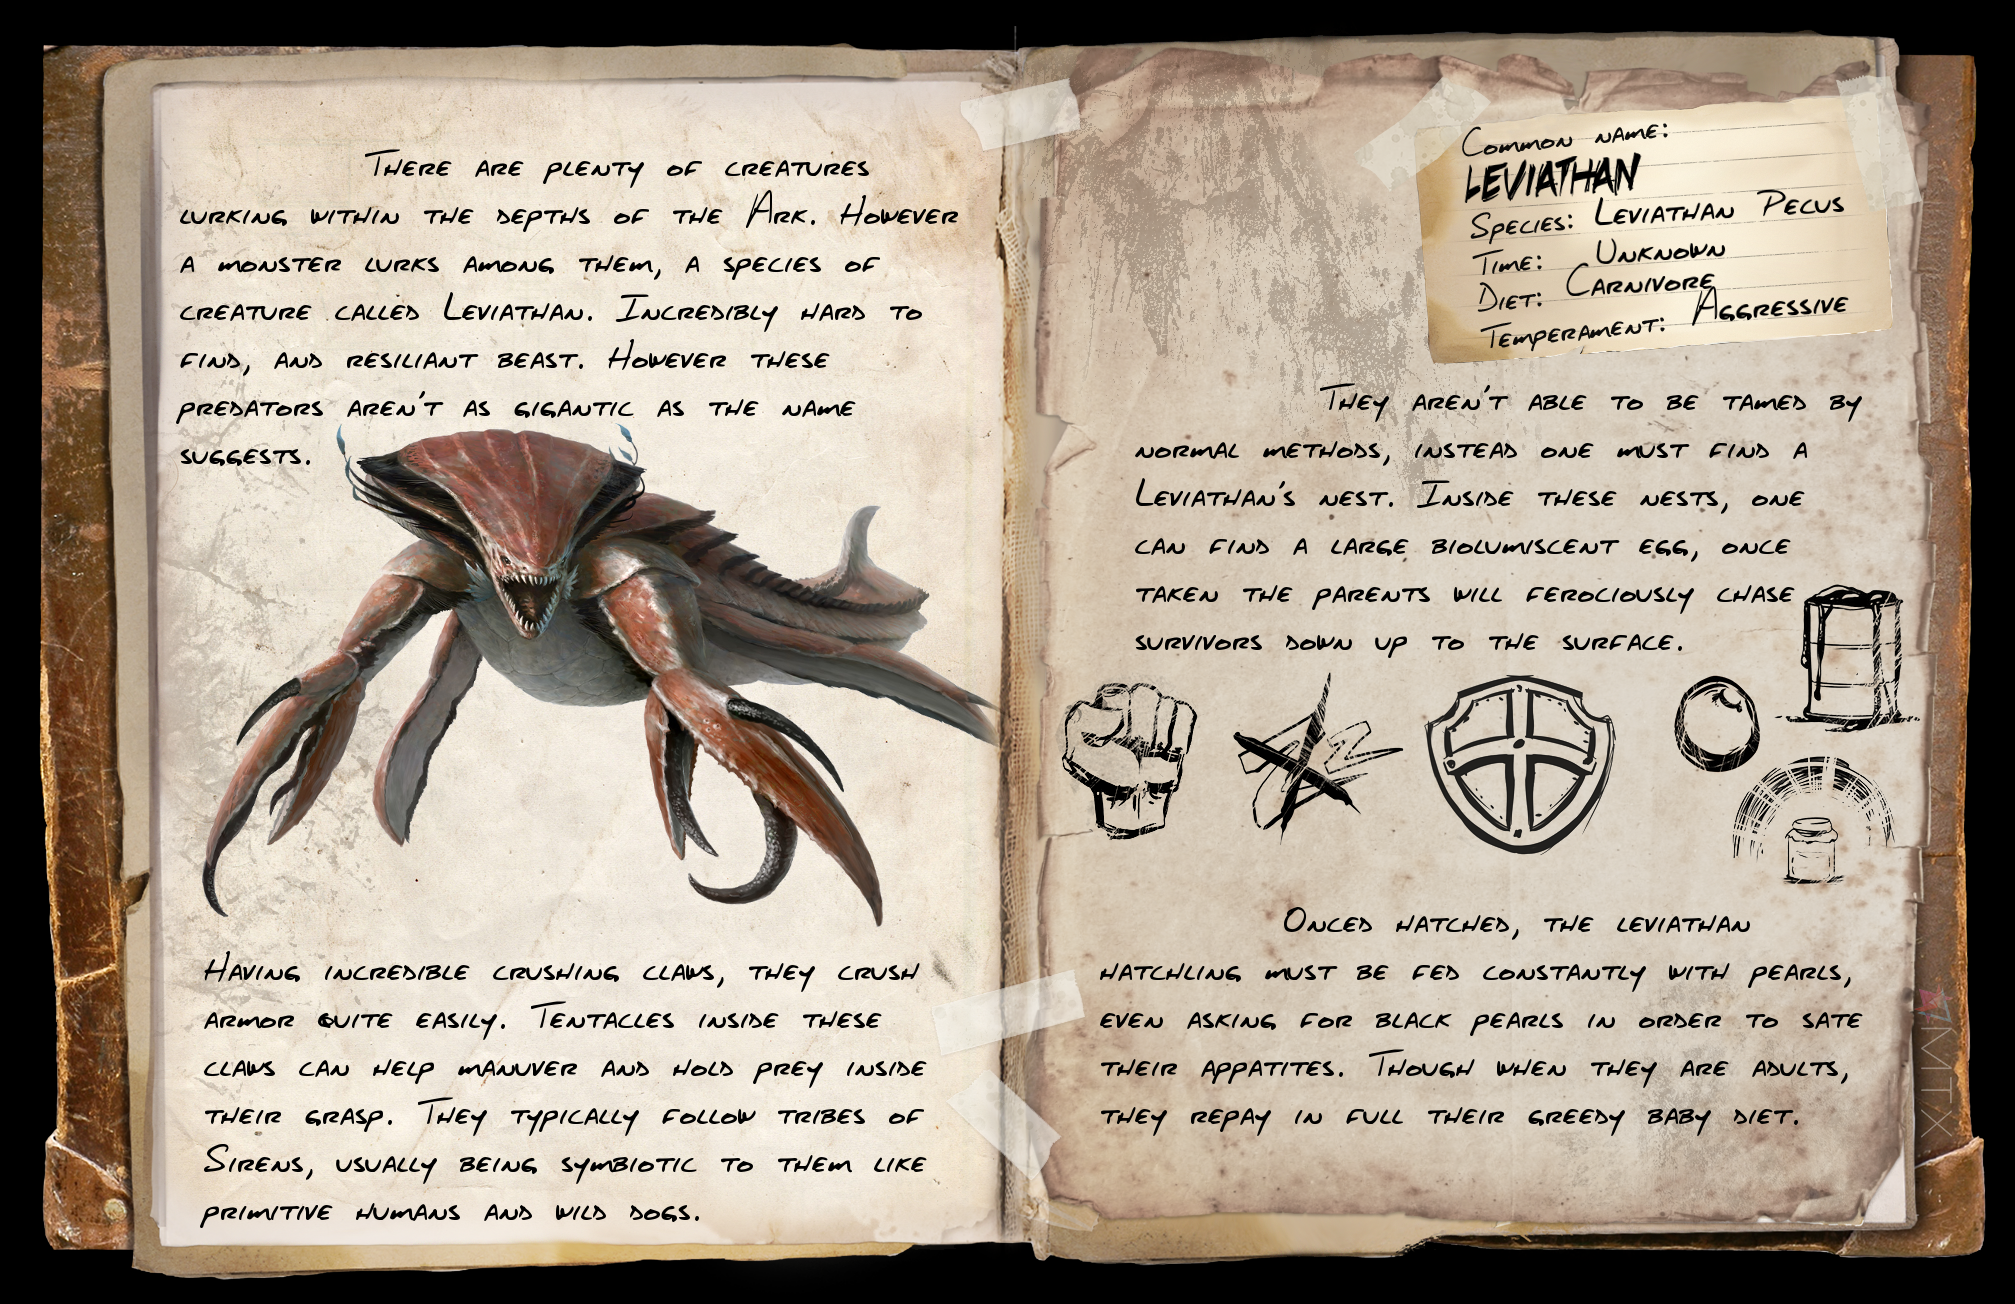 Community Crunch 76 Ark Park Sotf Finale Games Underwater Caves The Ark Digest 45 Jurassic Ark Item and creature id's are required for some of the admin commands. ark park sotf finale games underwater